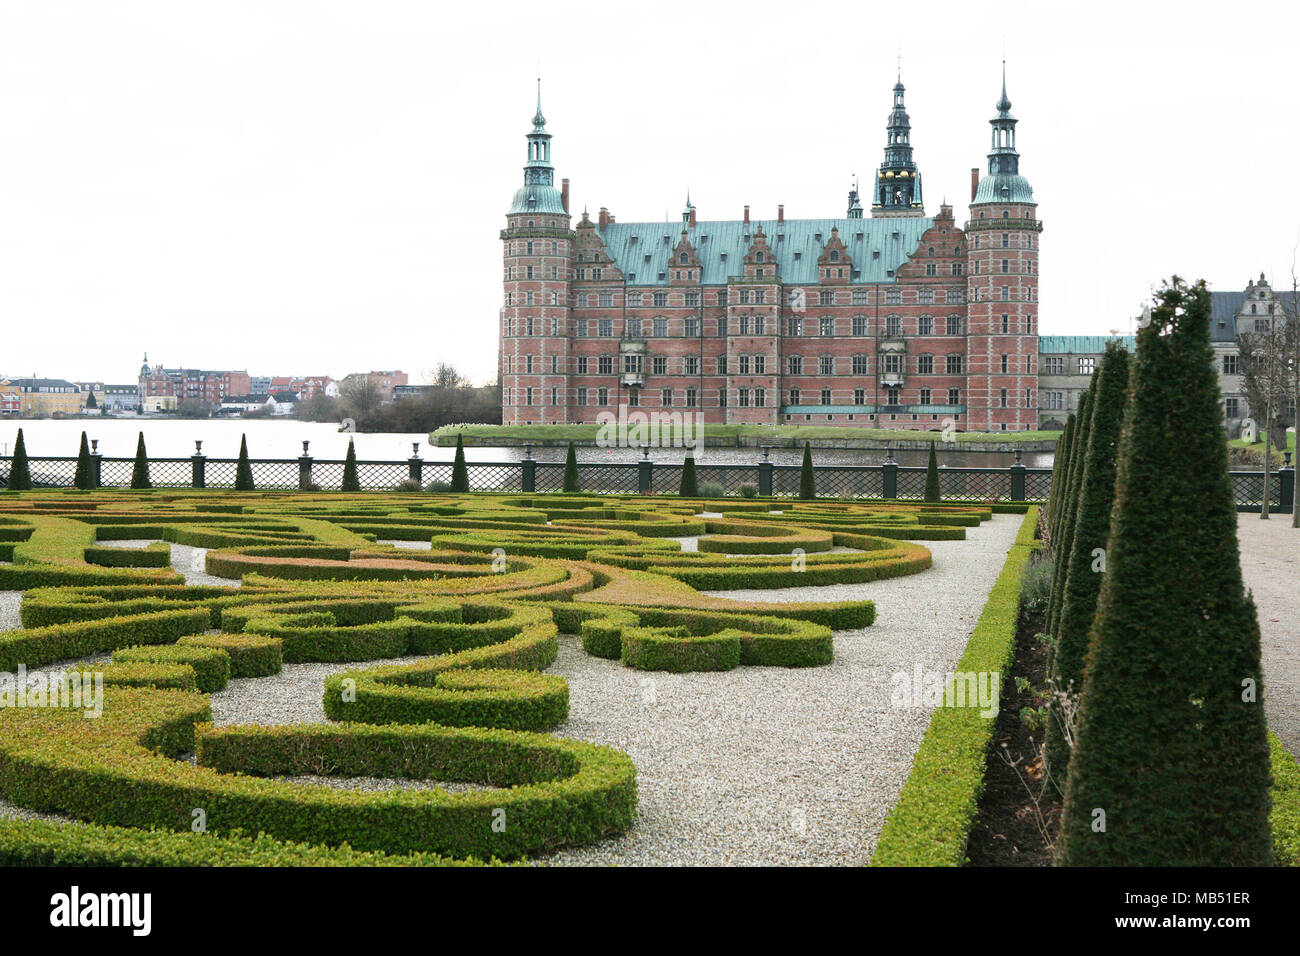 The castle and the garden at Hillerod, Denmark - Stock Image